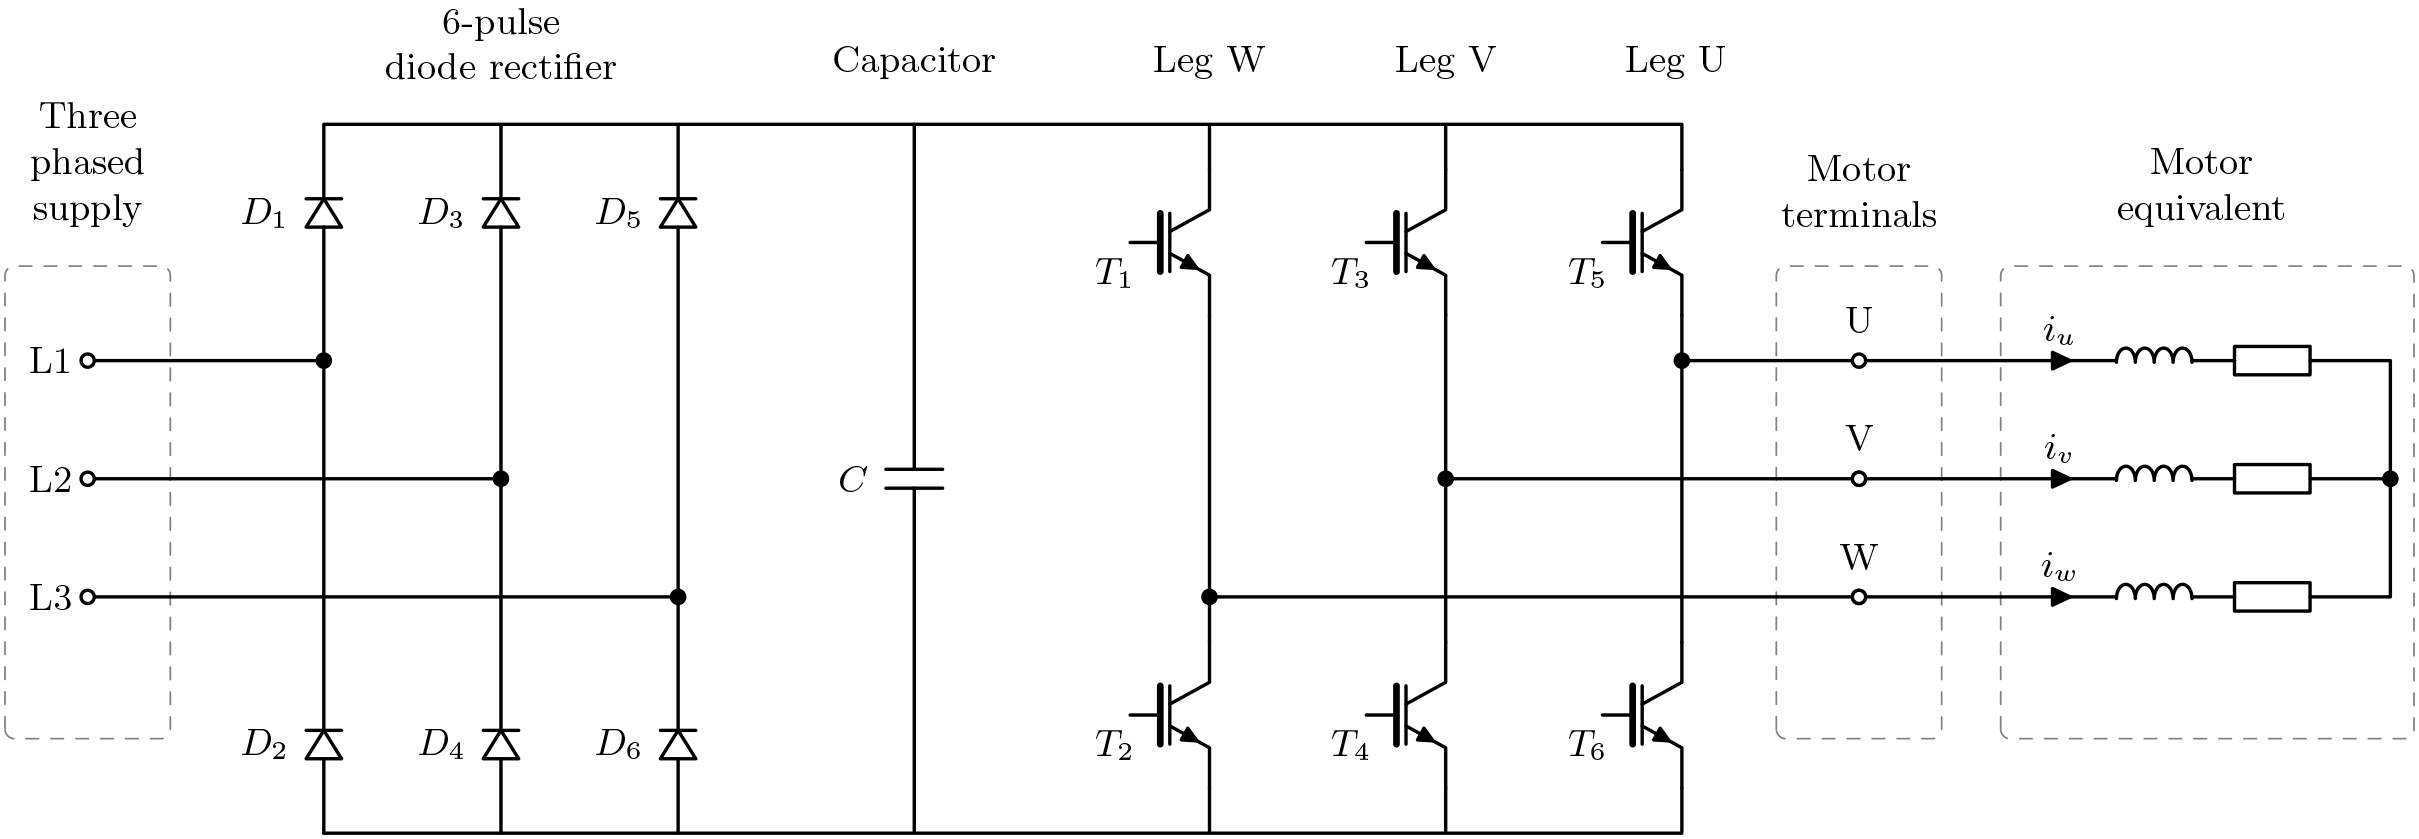 The schematics of a two-level inverter with passive diode front-end, DC-link capacitor and a motor equivalent connected. Snubbers and anti-parallel diodes are not shown.